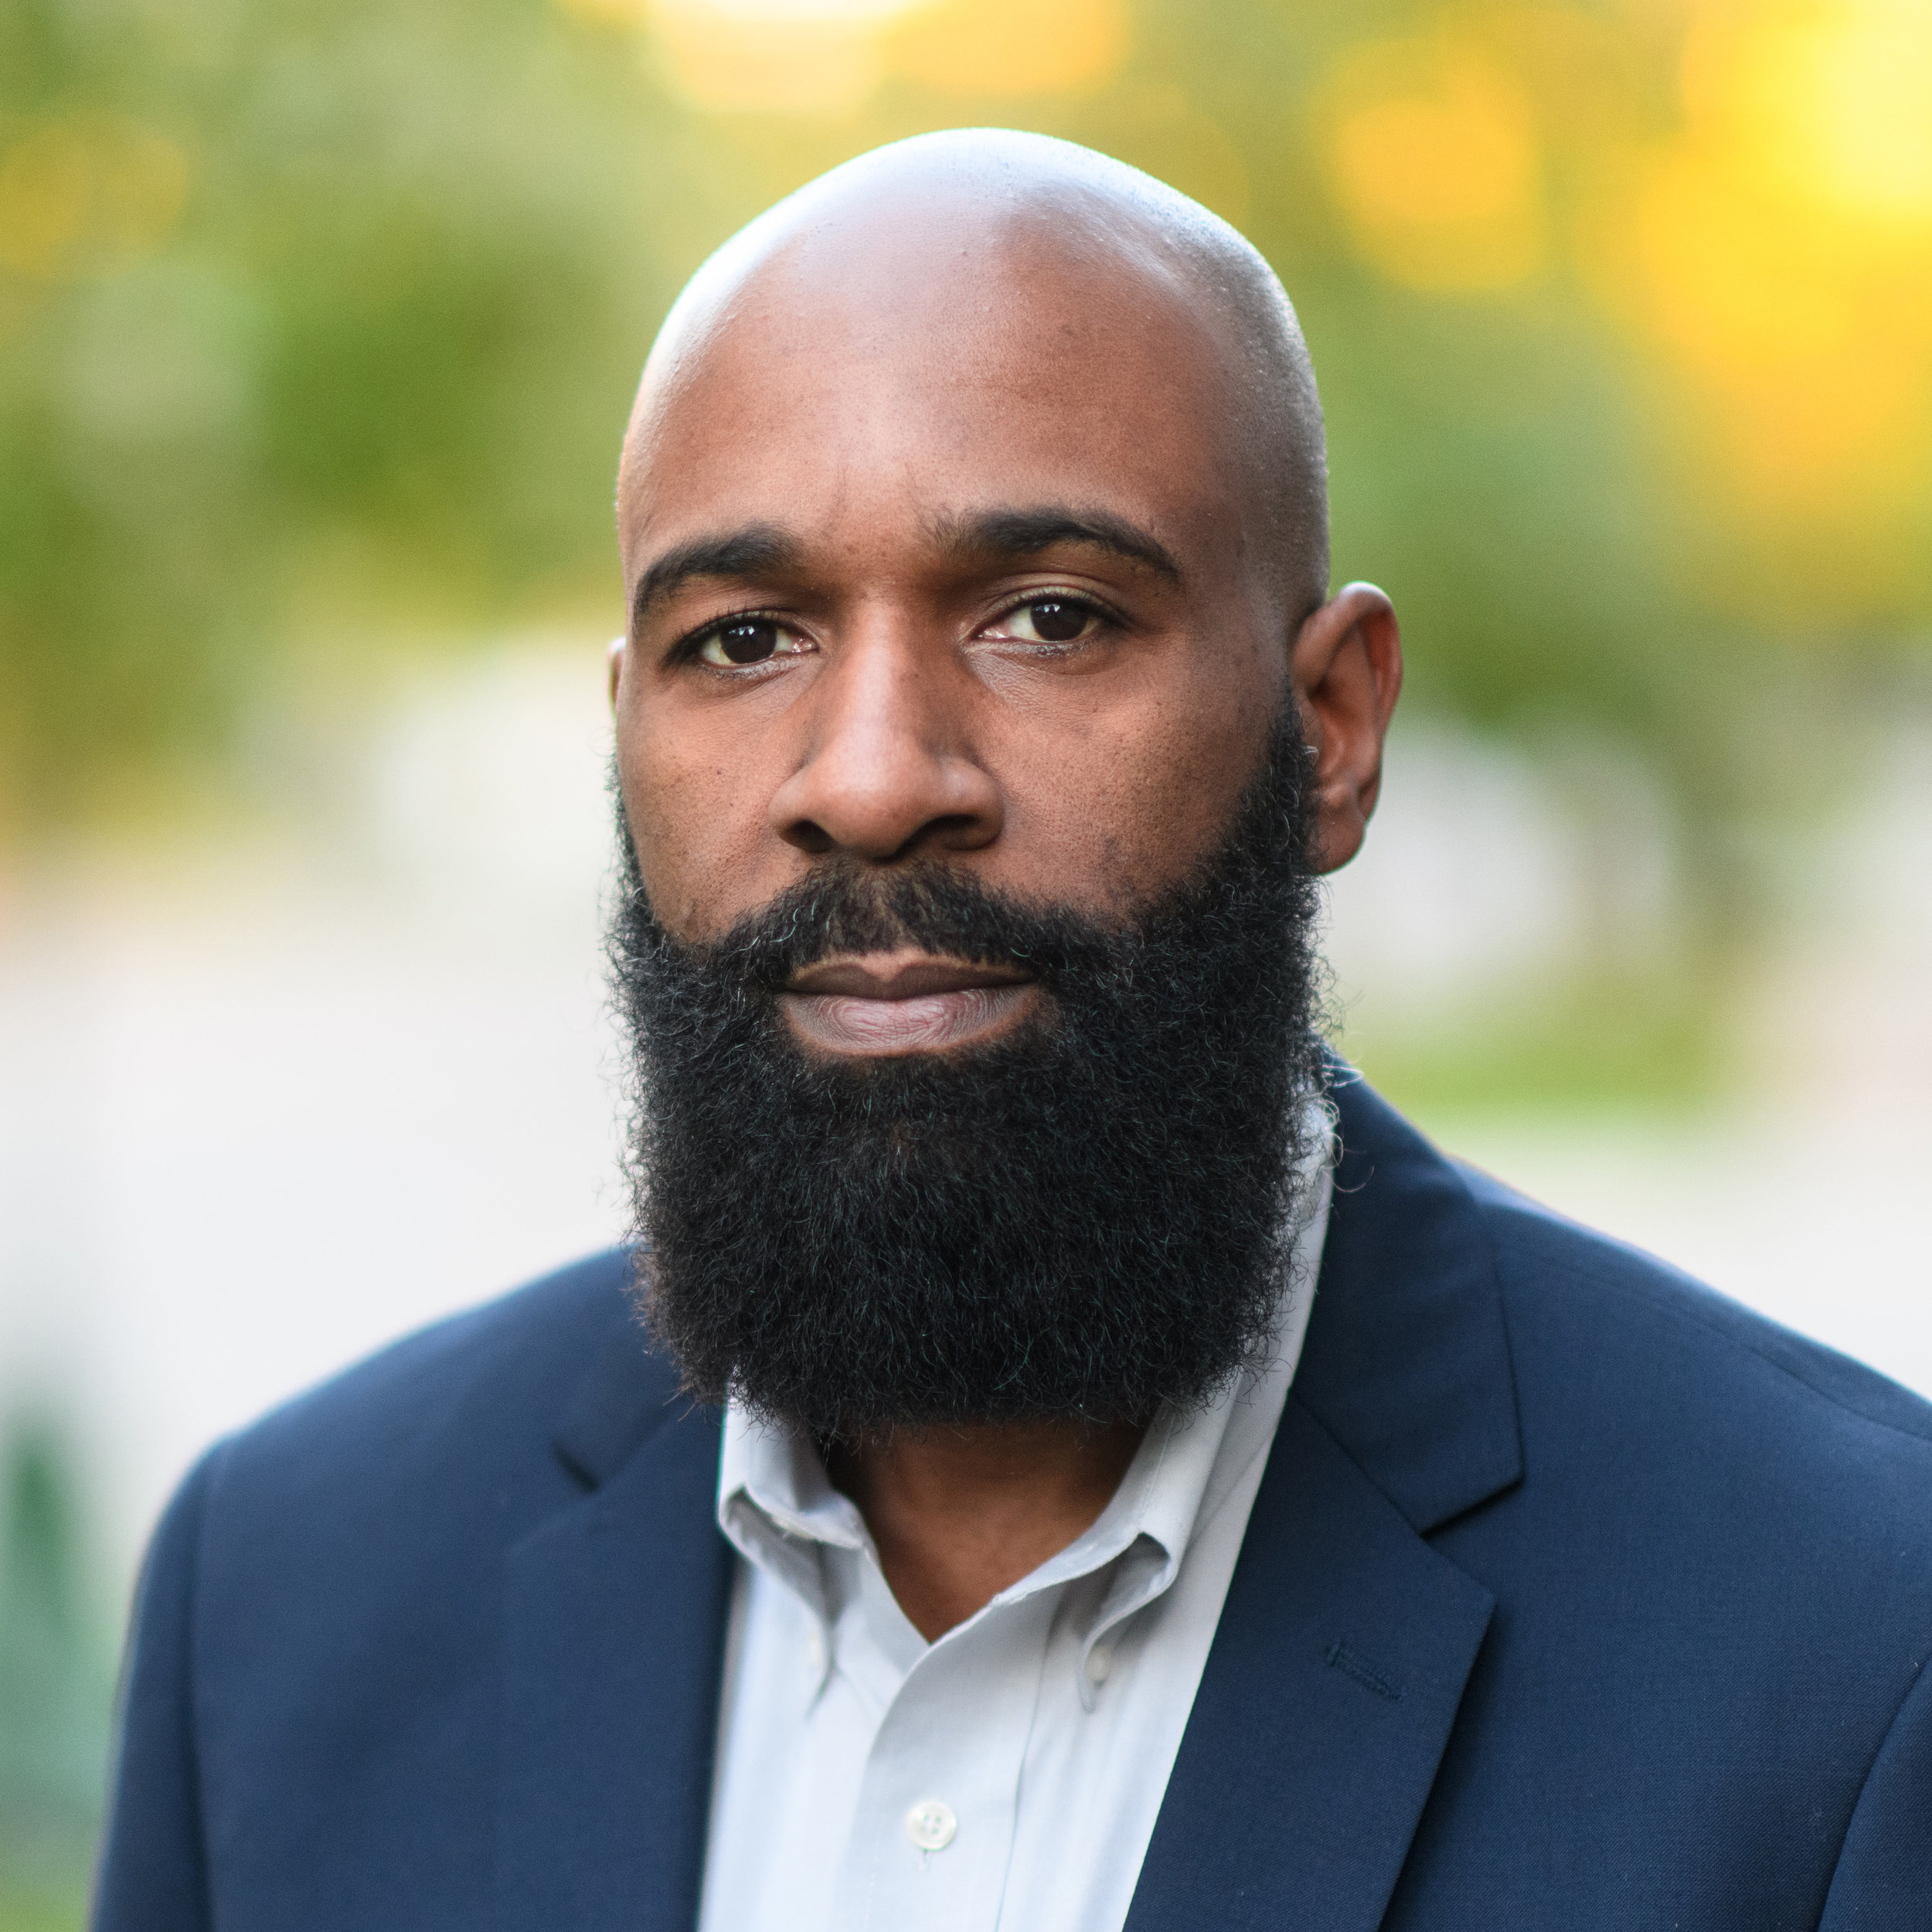 TIM THOMAS - candidate for 2019 OAK pARK VILLAGE TRUSTEE